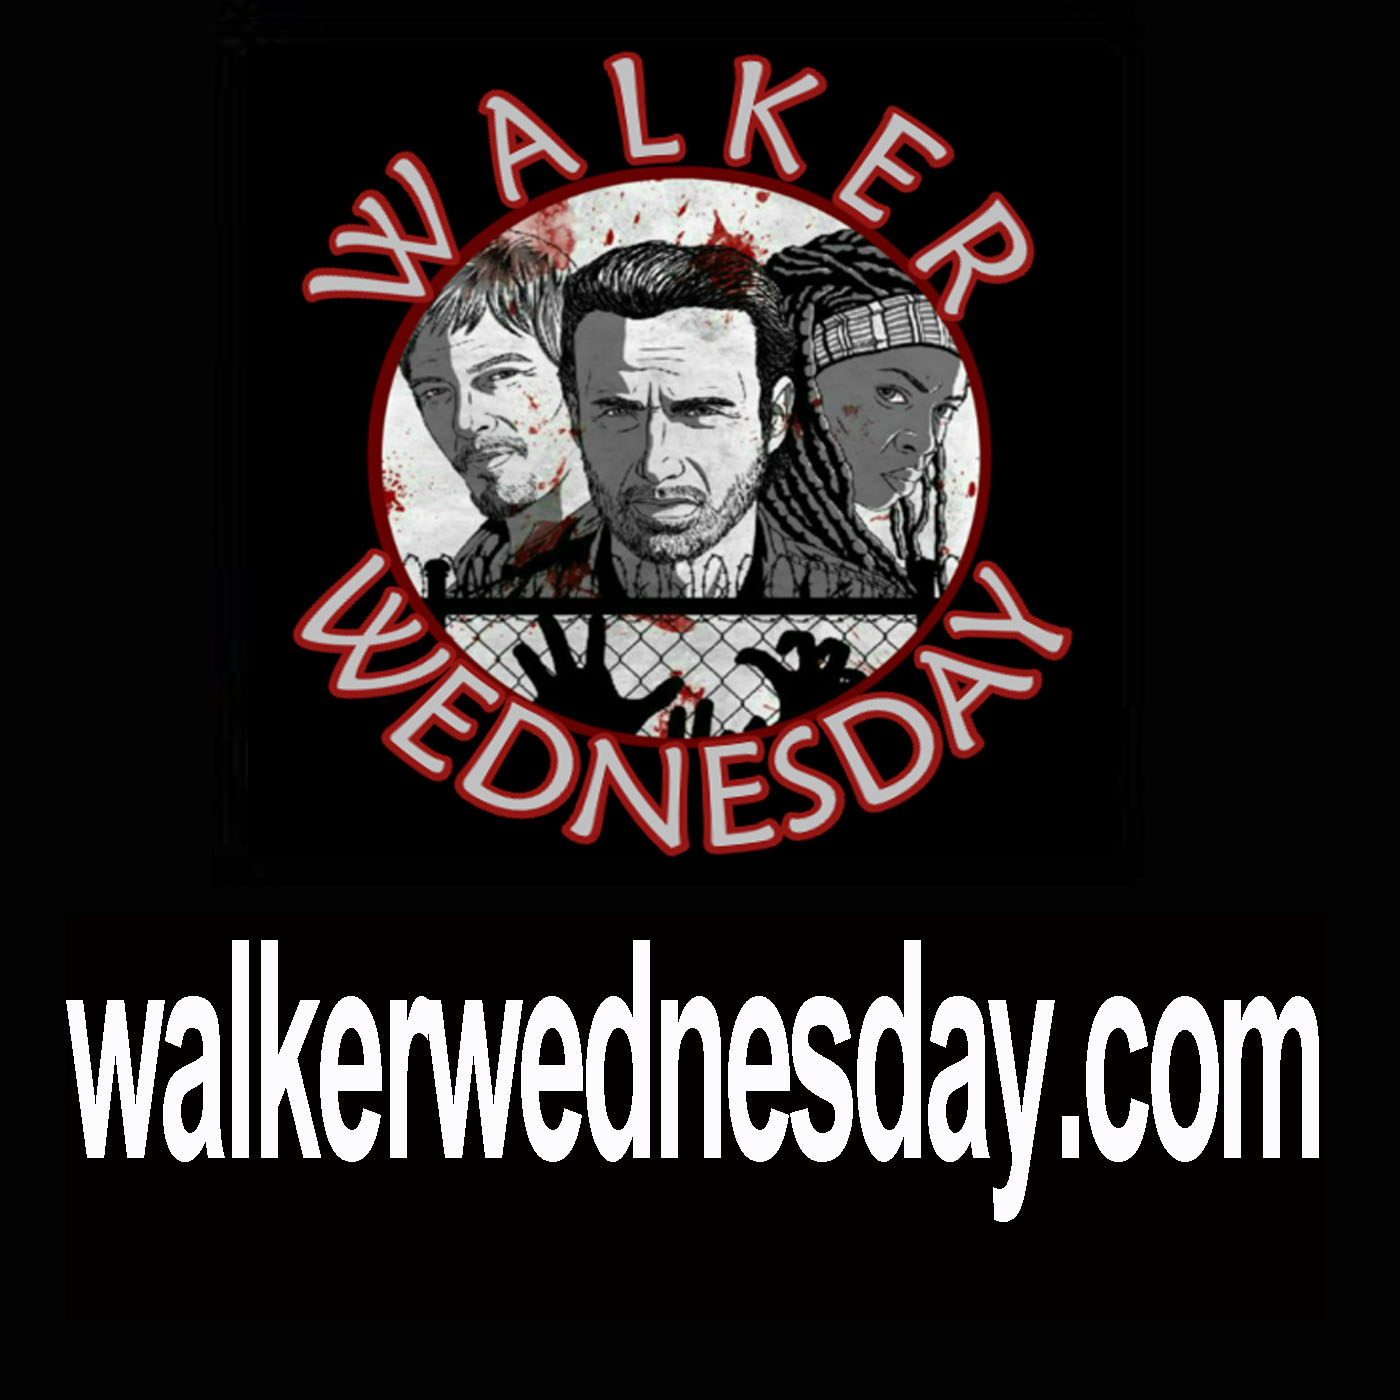 Walker Wednesday